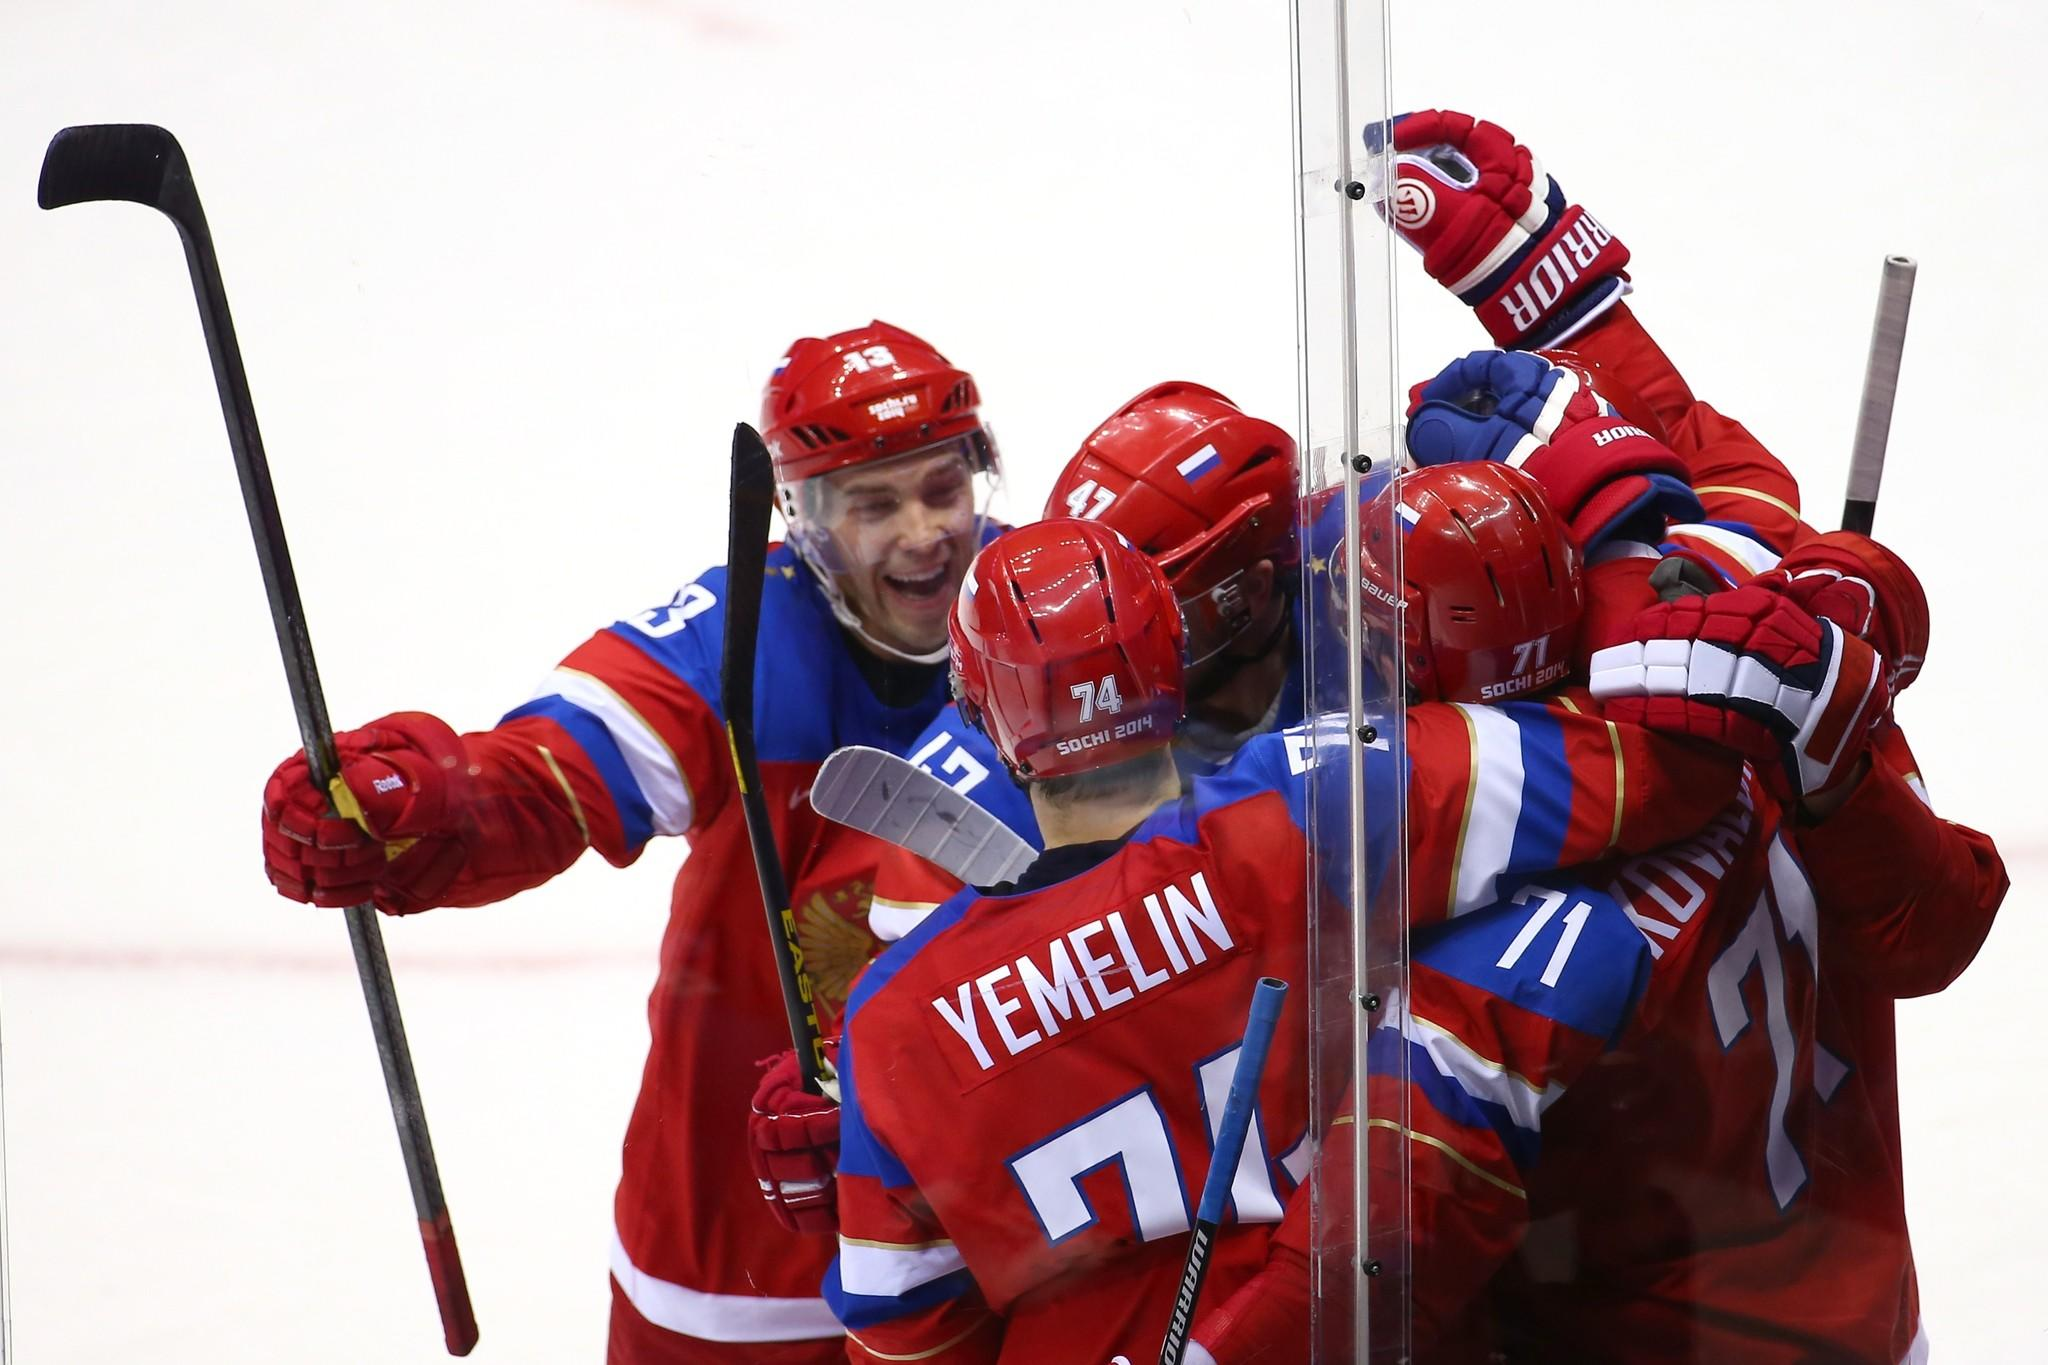 Alexander Radulov (left) of Russia celebrates with his teammates after scoring a goal.